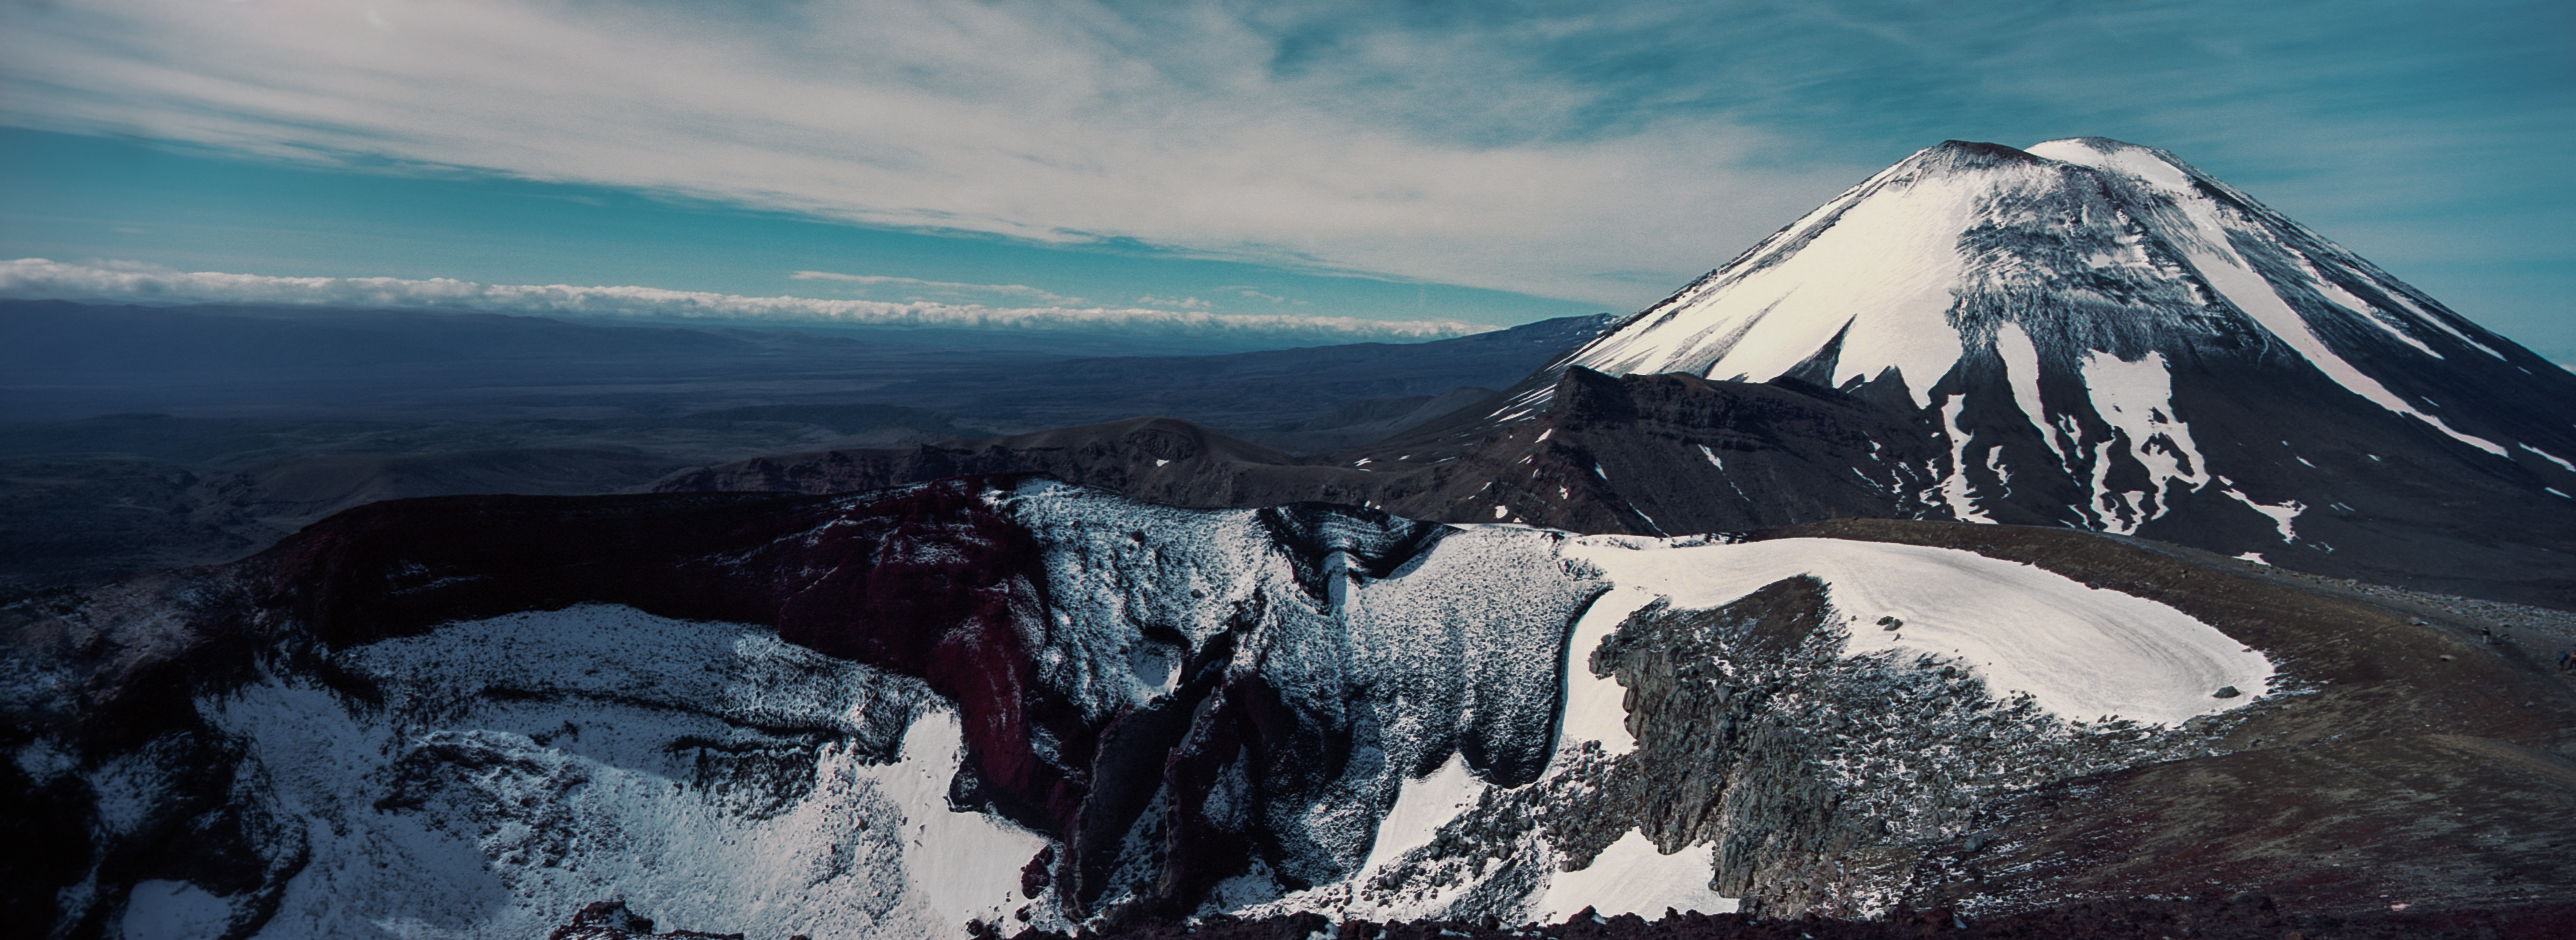 Red Crater / Mt Ngauruhoe, Tongariro National Park, Ruapehu District, North Island